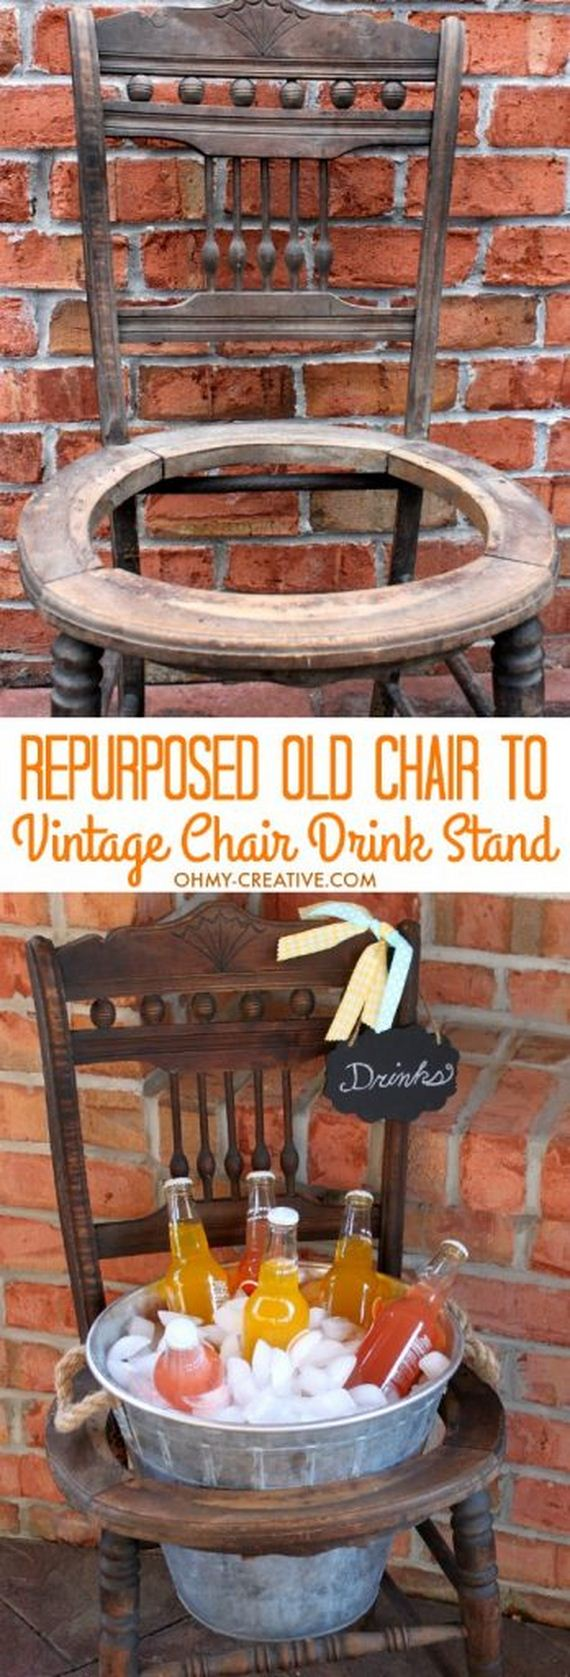 10-repurpose-old-chairs